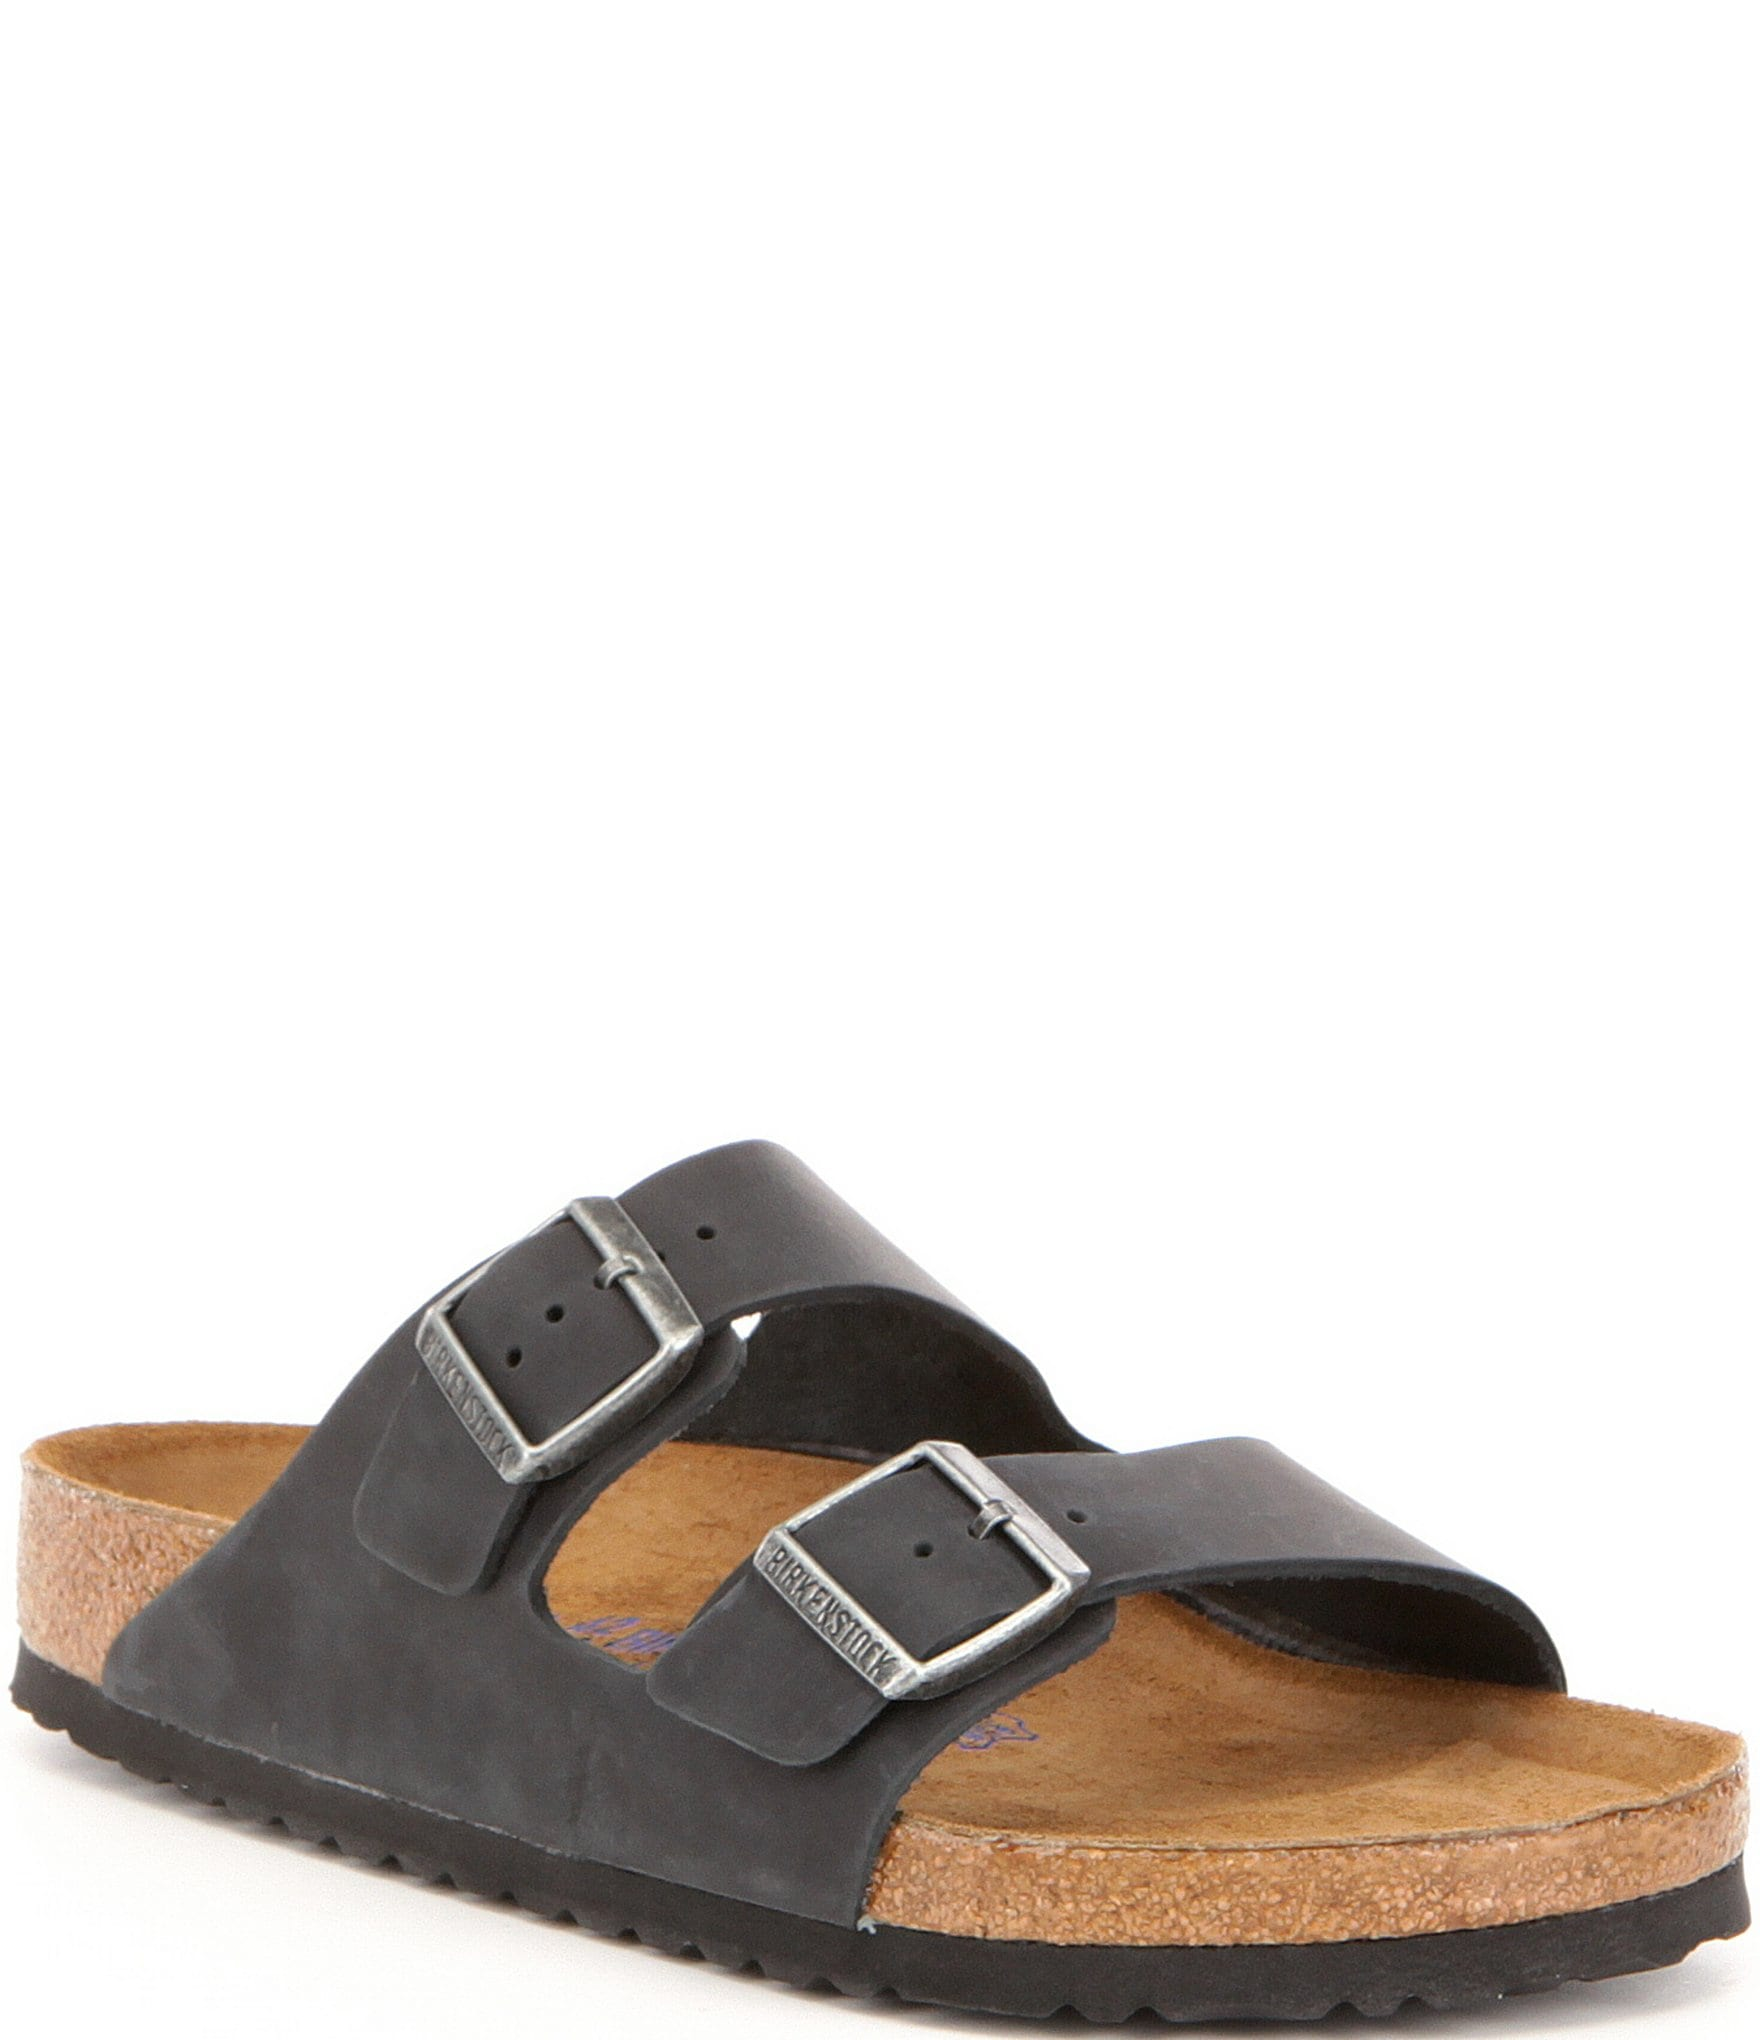 90984197868 Birkenstock Men s Soft Footbed Sandals